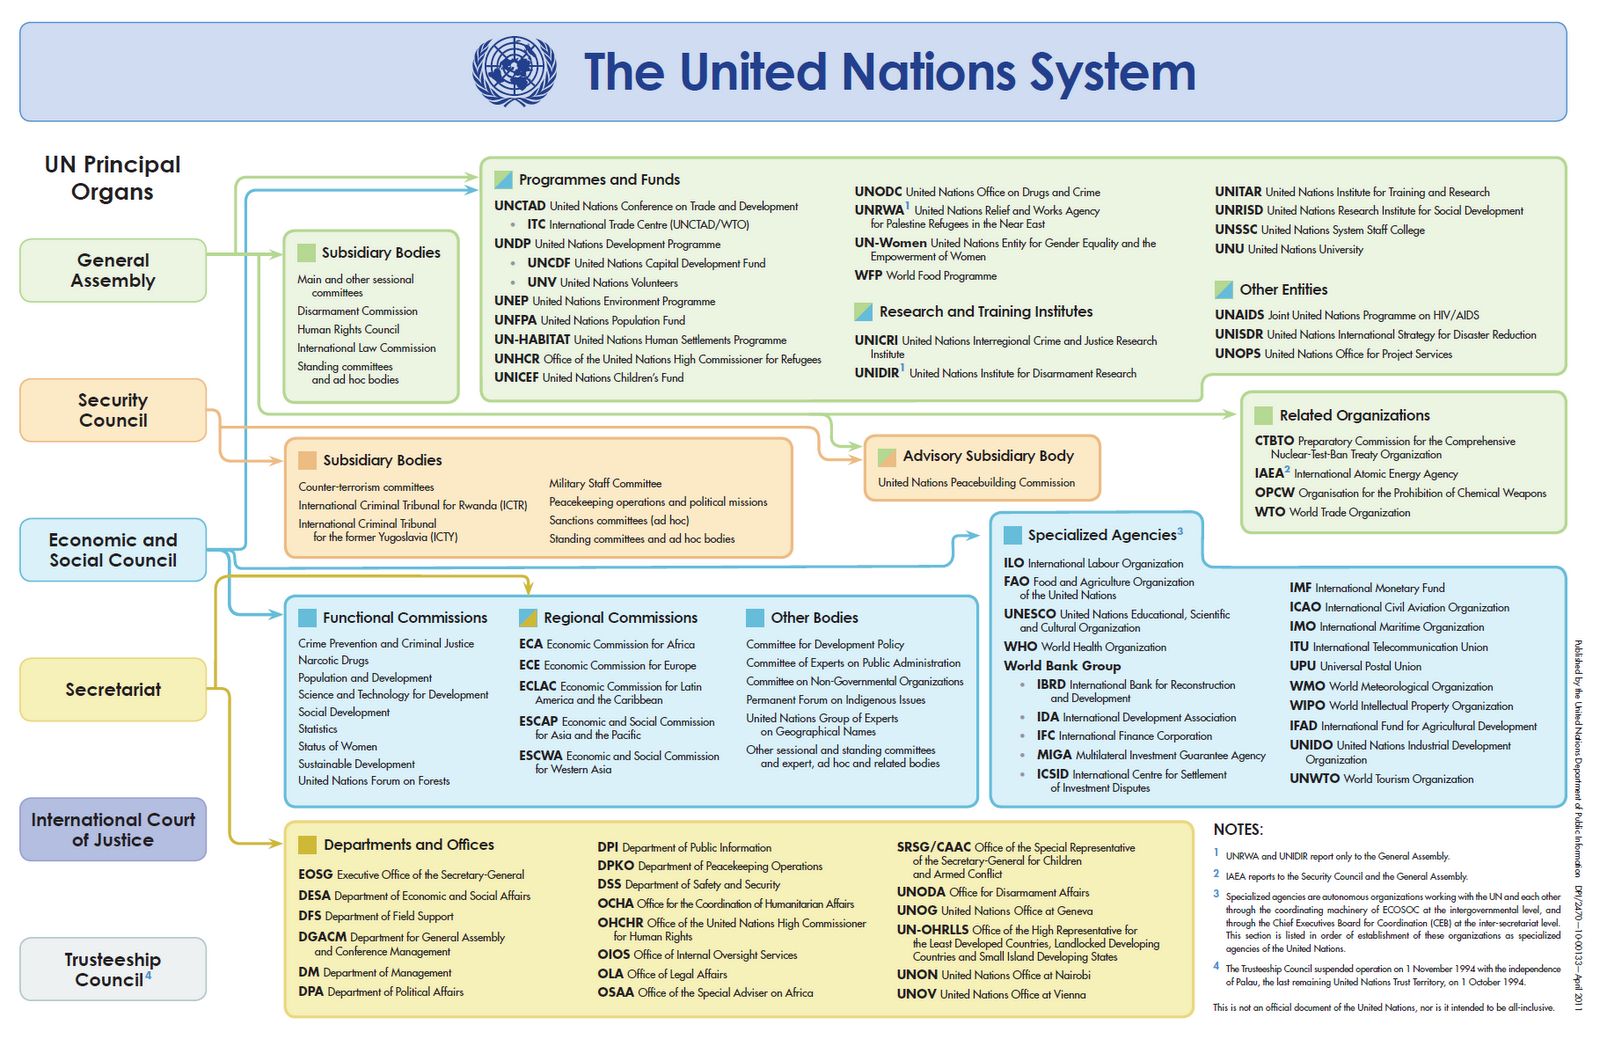 united nation system and organs The united nations system consists of the united nations, its subsidiary organs (including the separately-administered funds and programmes), the specialized agencies.